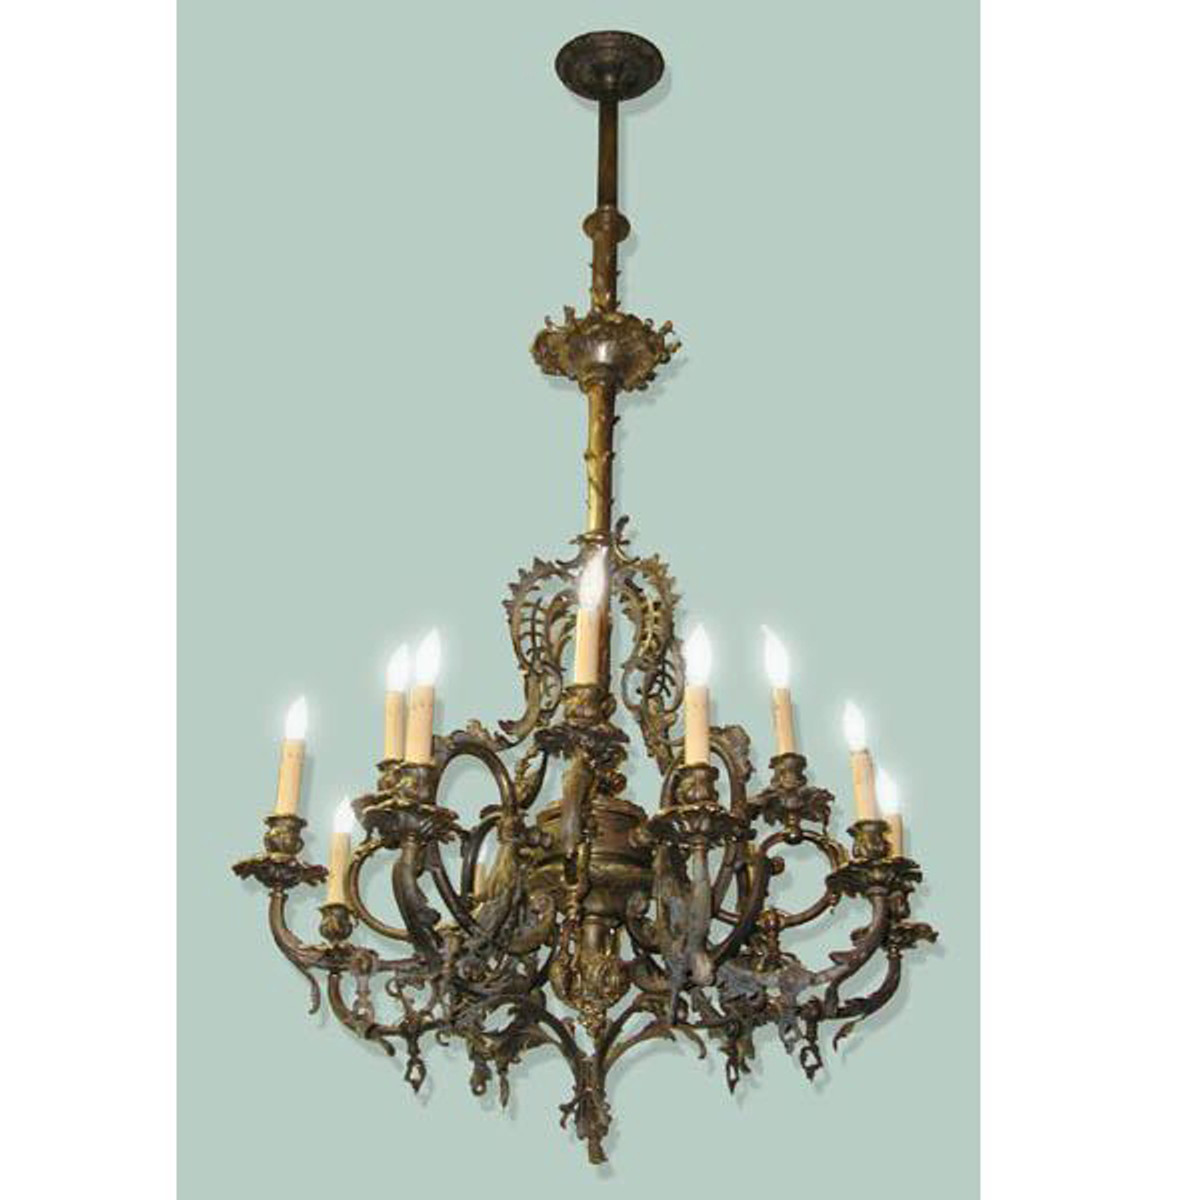 608047 - Antique Louis XV Style Twelve Arm Ceiling Light Fixture